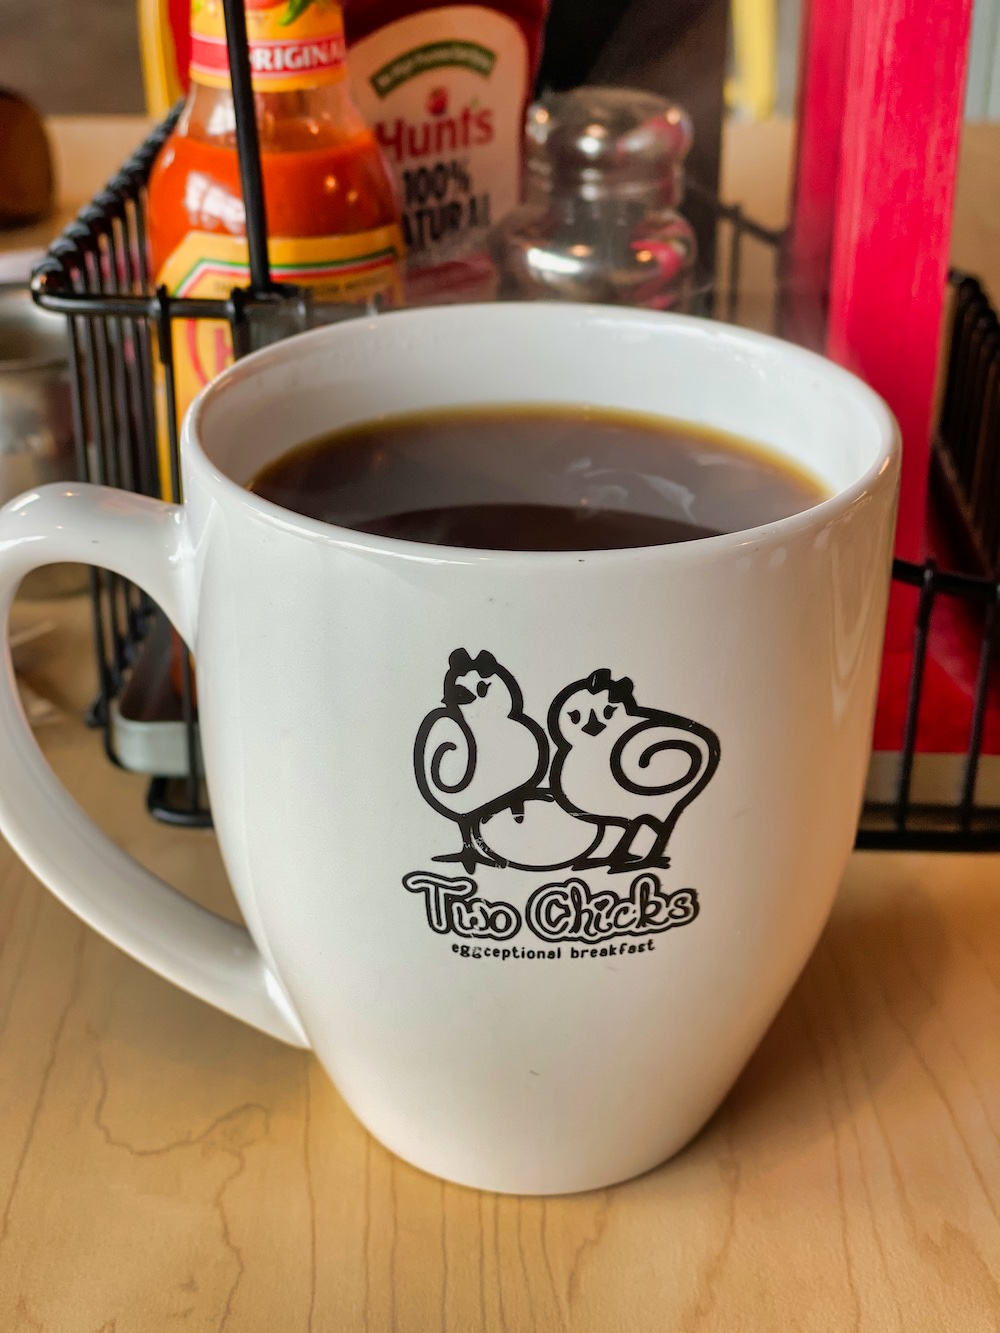 Weekend in Reno - Brunch at Two Chicks